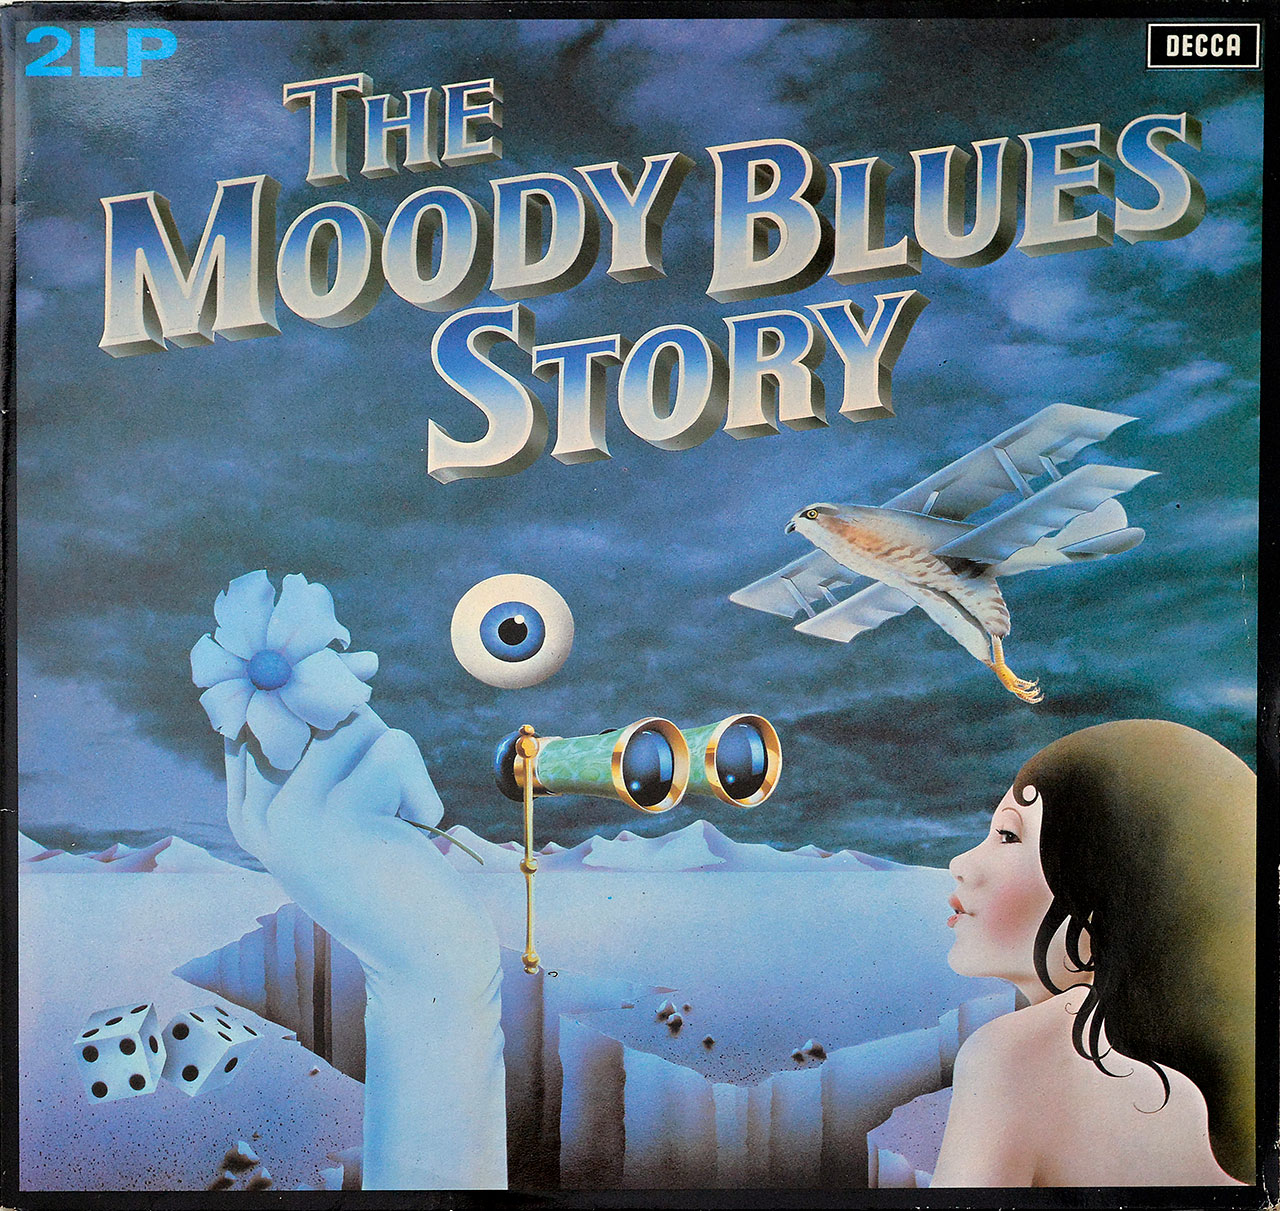 A0686 MOODY BLUES The Moody Blues Story